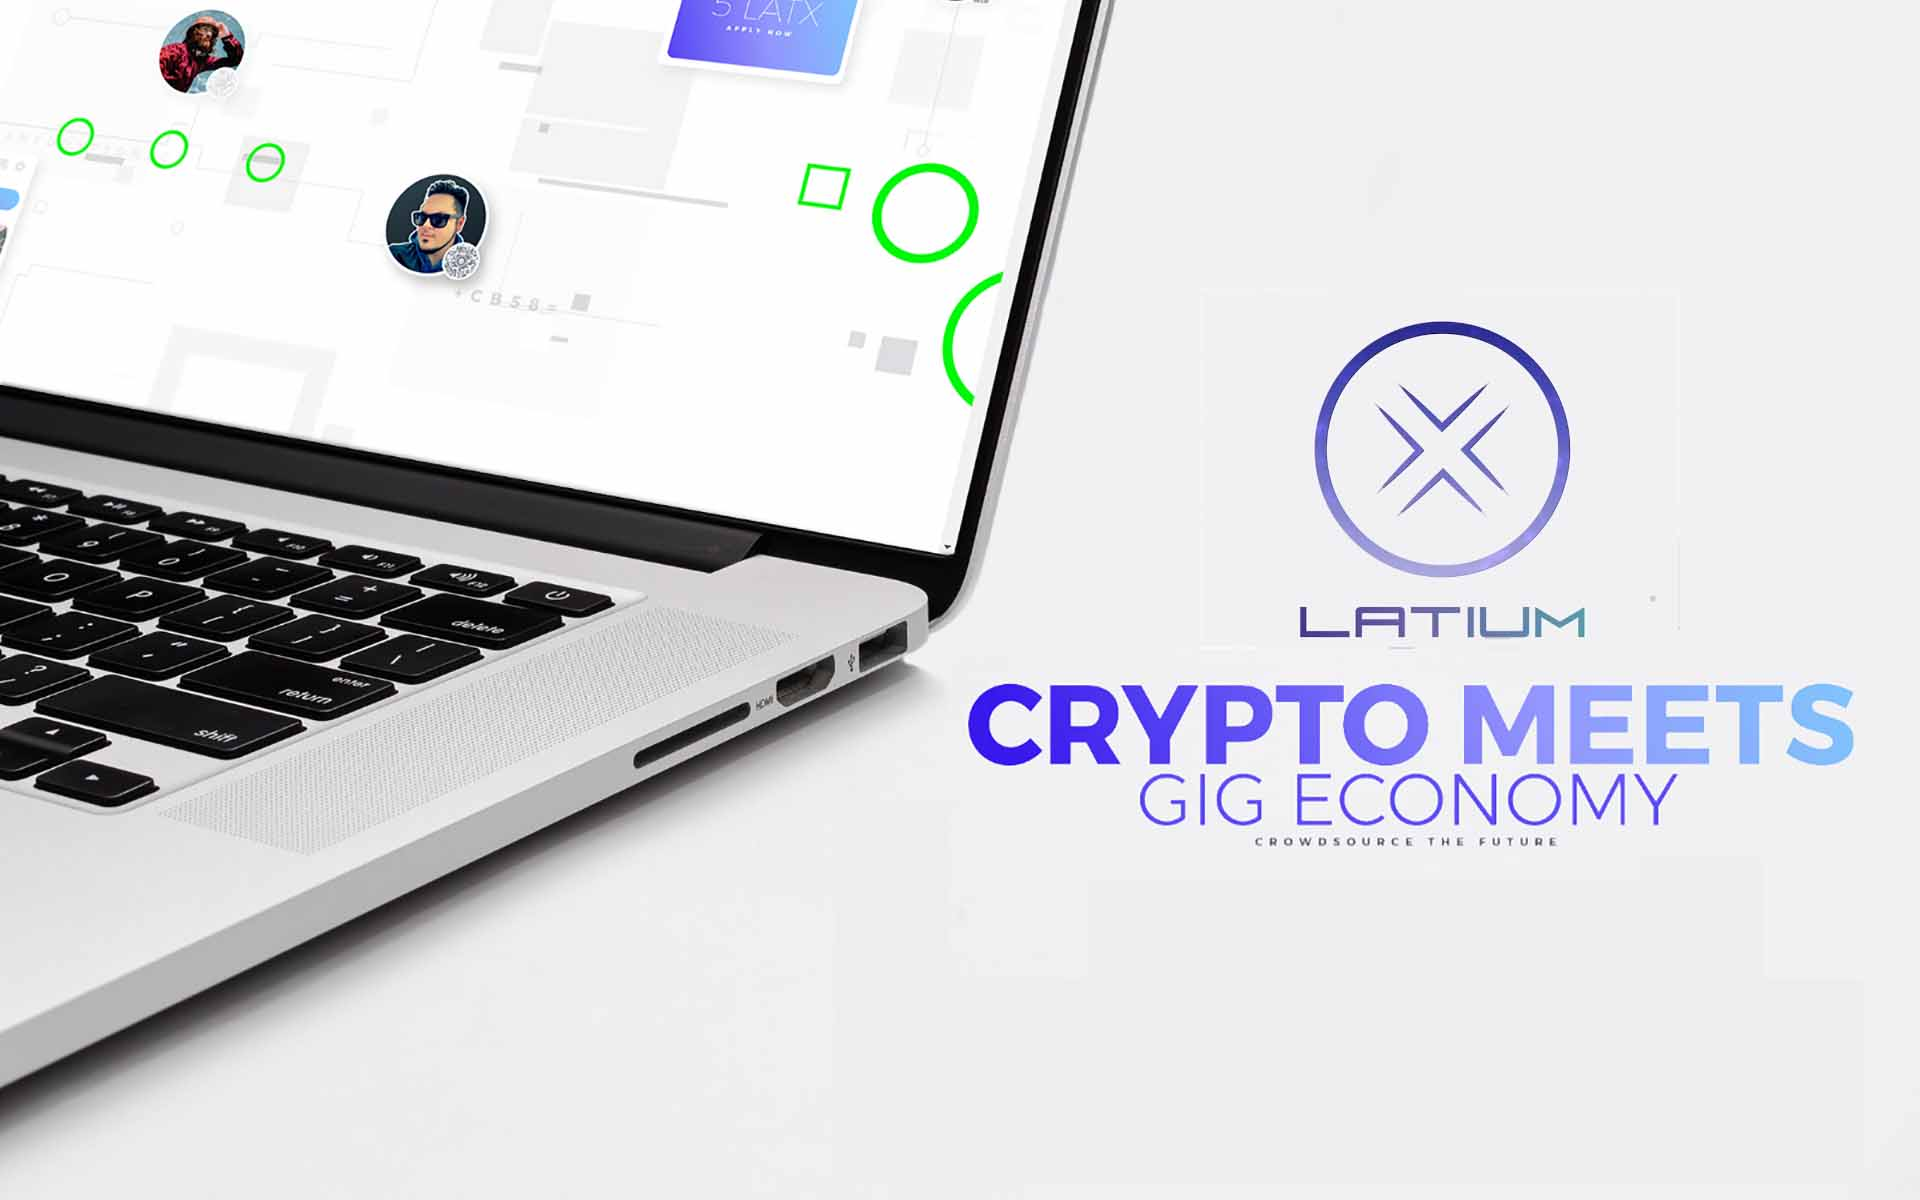 LATIUM Launches Revolutionary New Platform For The Gig Economy and Instantly Created A New Paradigm In The Way Gig Workers In The Global Community Interact